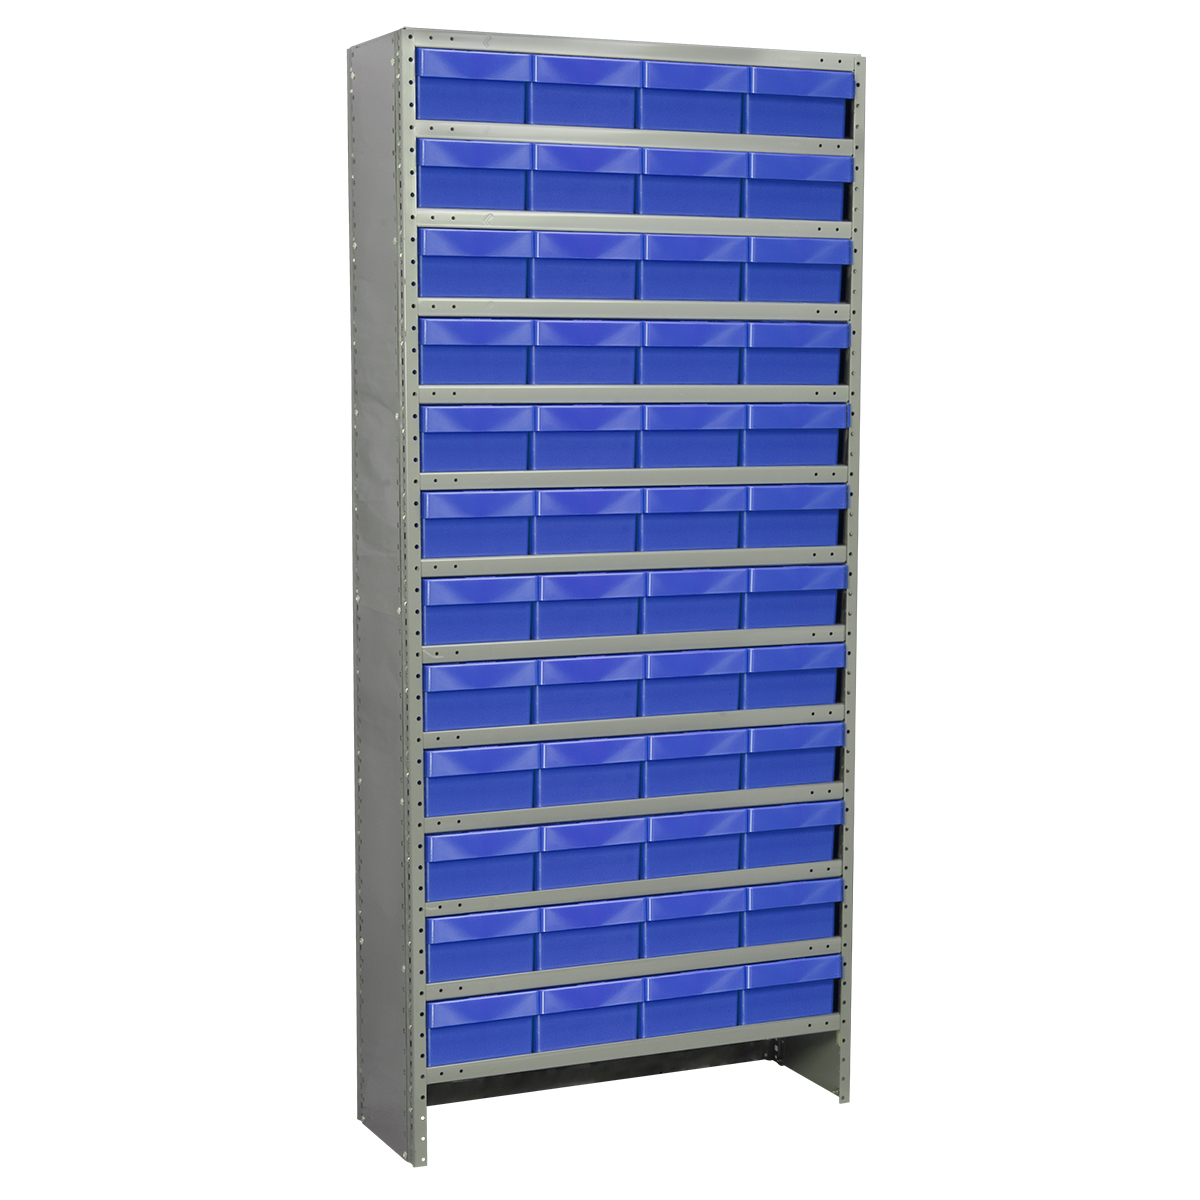 Enclosed Steel Shelving Kit, 12x36x79, 72 AkroDrawers, Gray/Blue.  This item sold in carton quantities of 1.